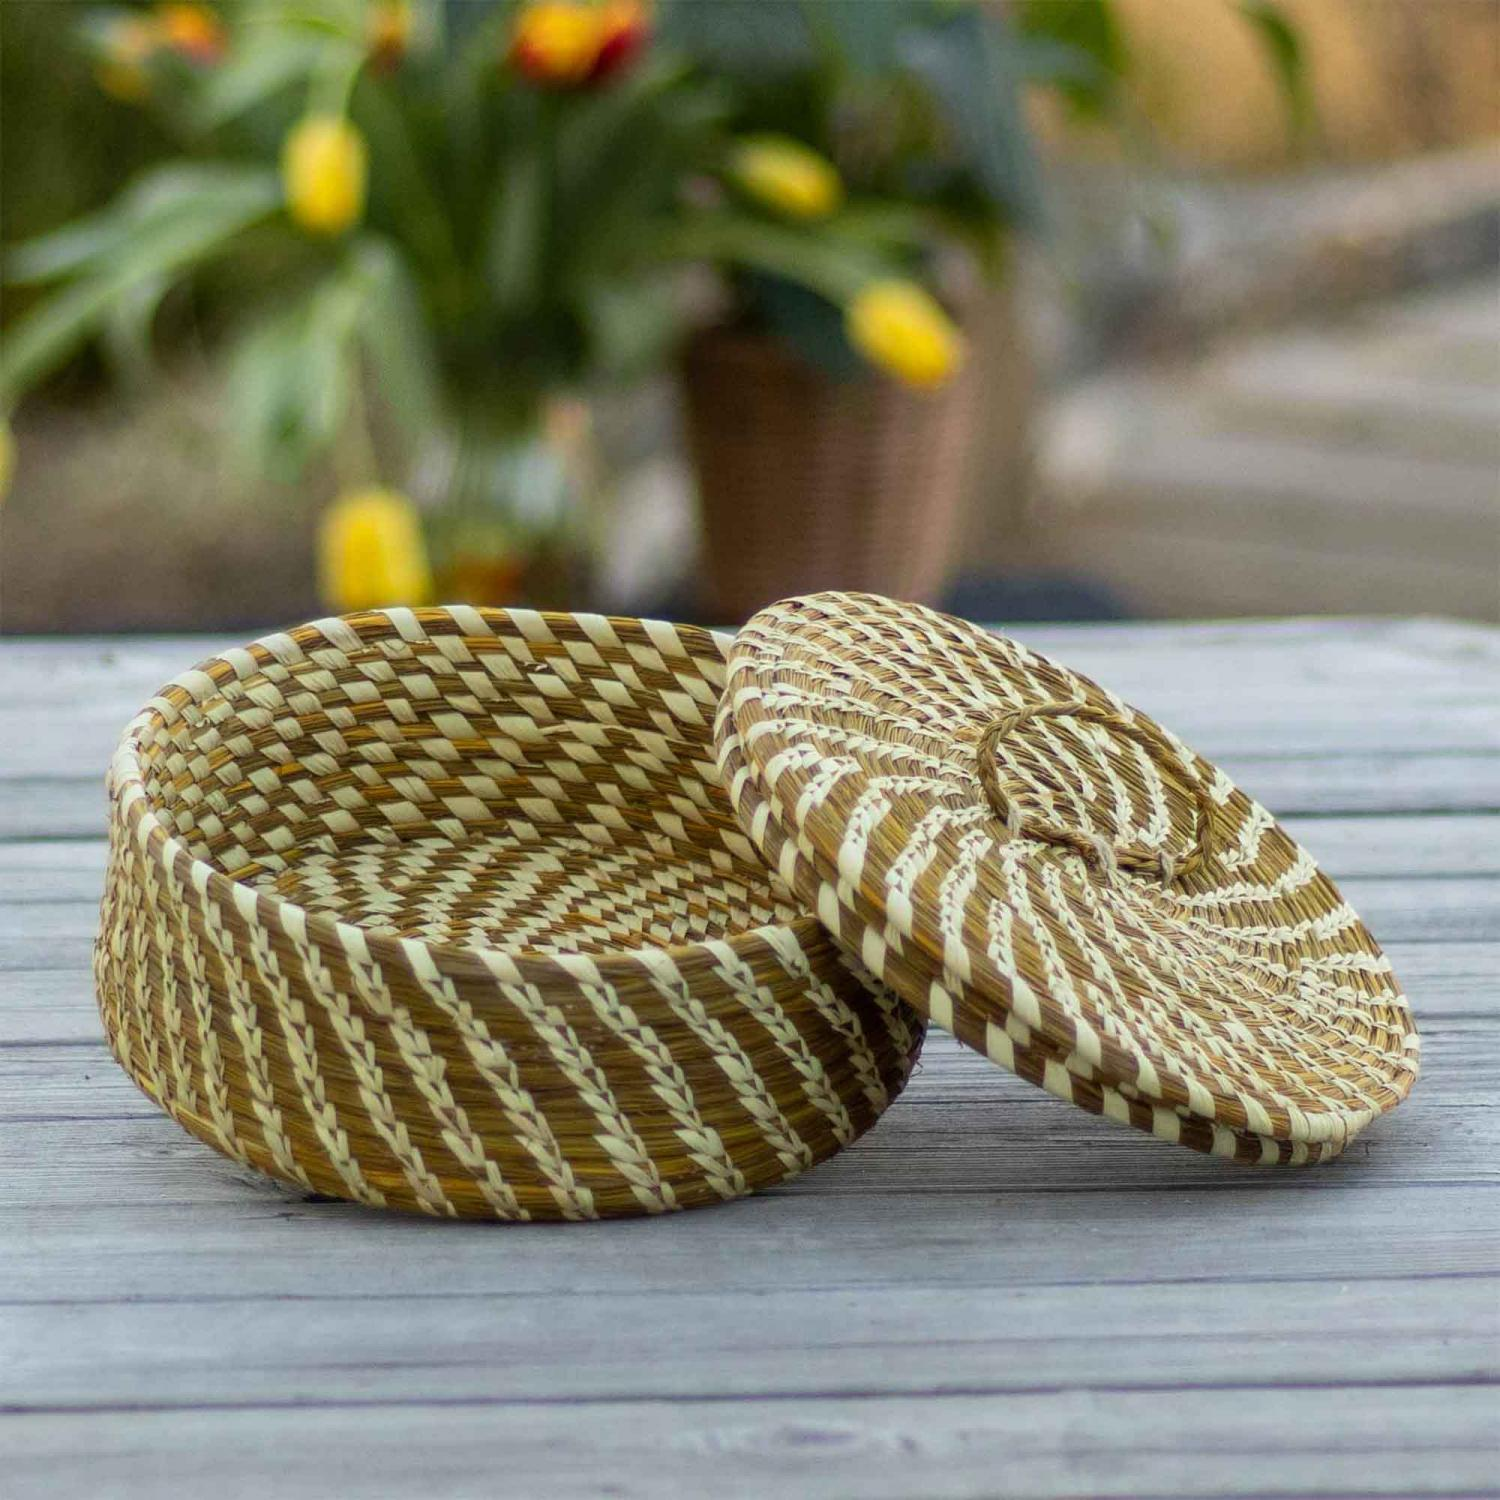 Golden grass container with a combination of brown and golden color